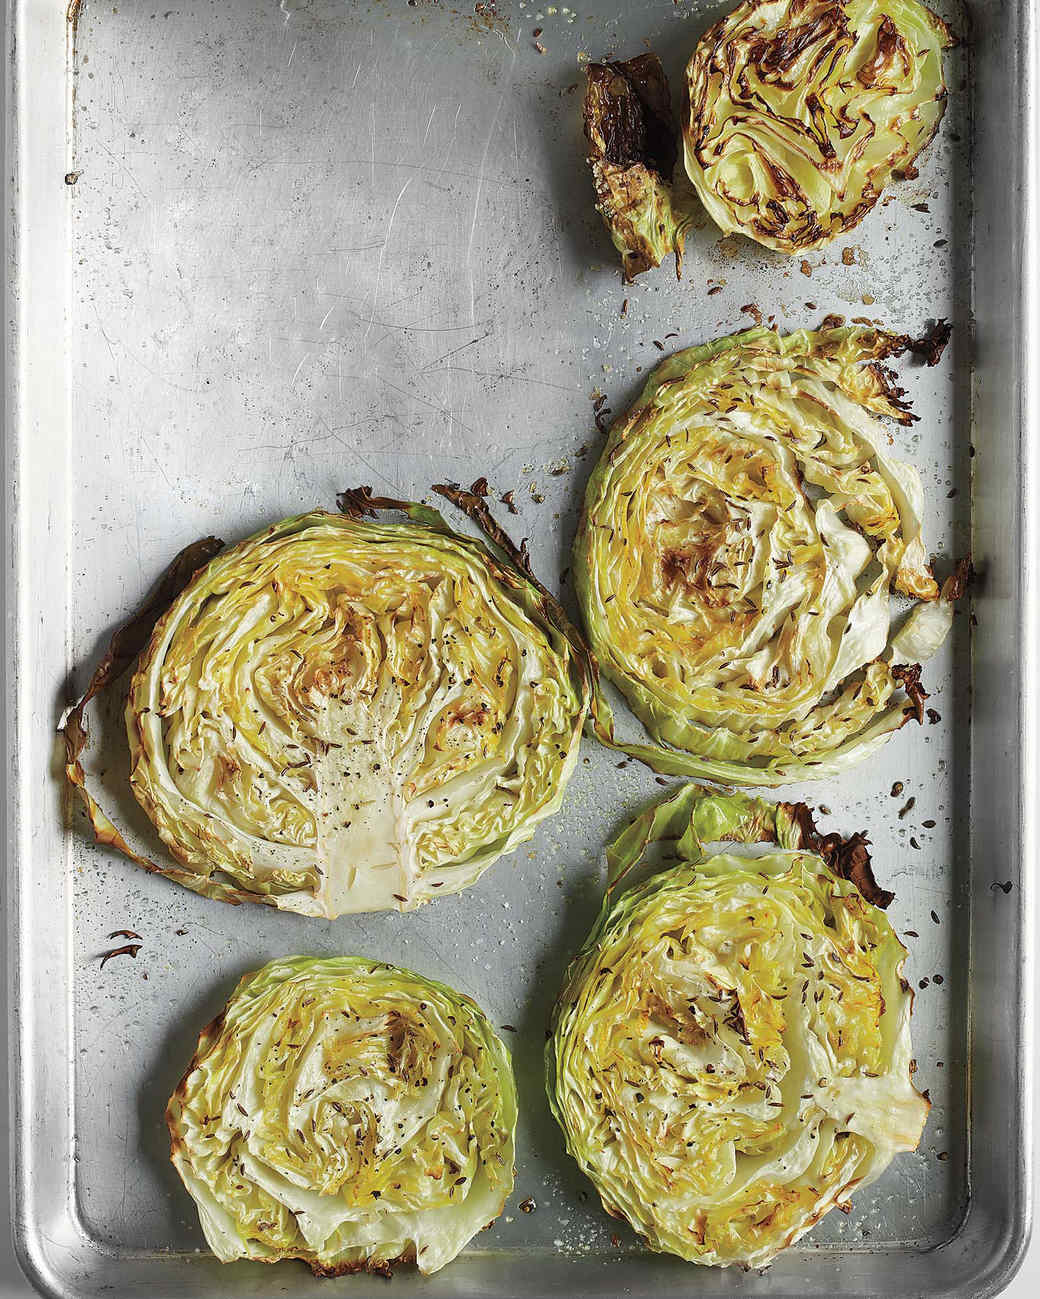 Cabbage Recipes That'll Add Color and Crunch to Your Meals